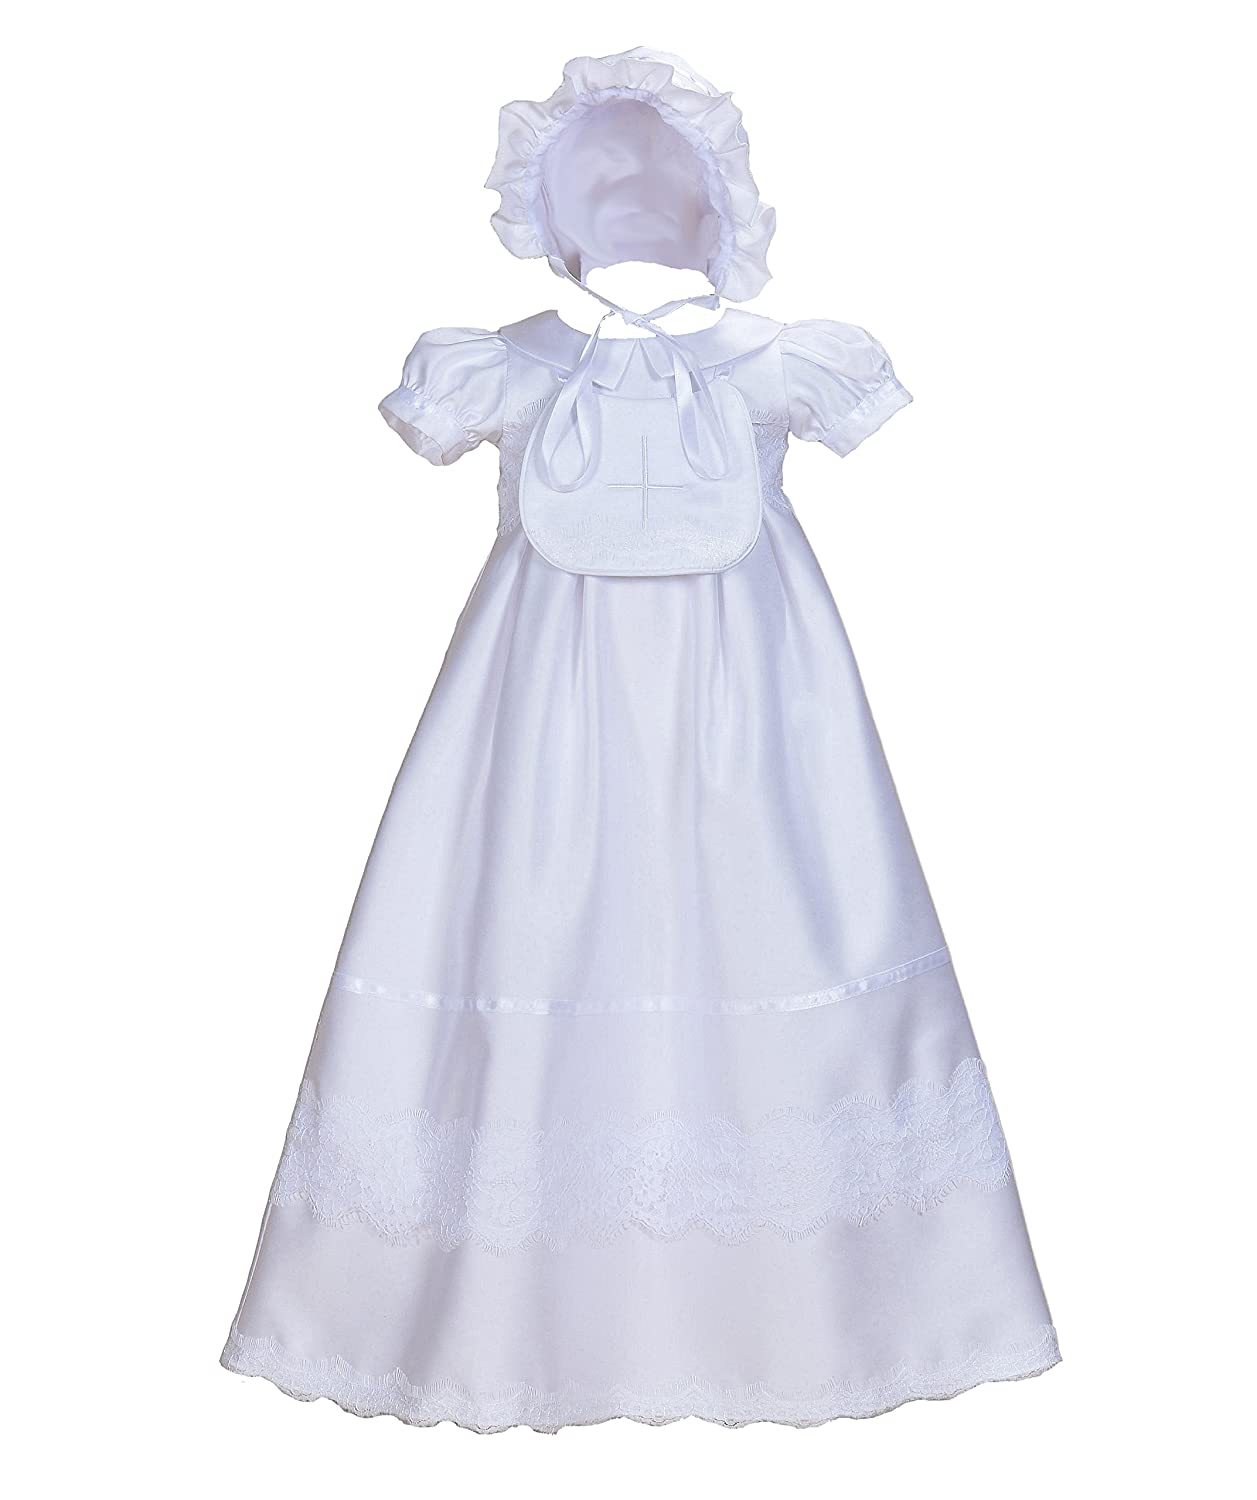 Cinda Baby Girls Satin Christening Gown with Bib and Bonnet GZ917